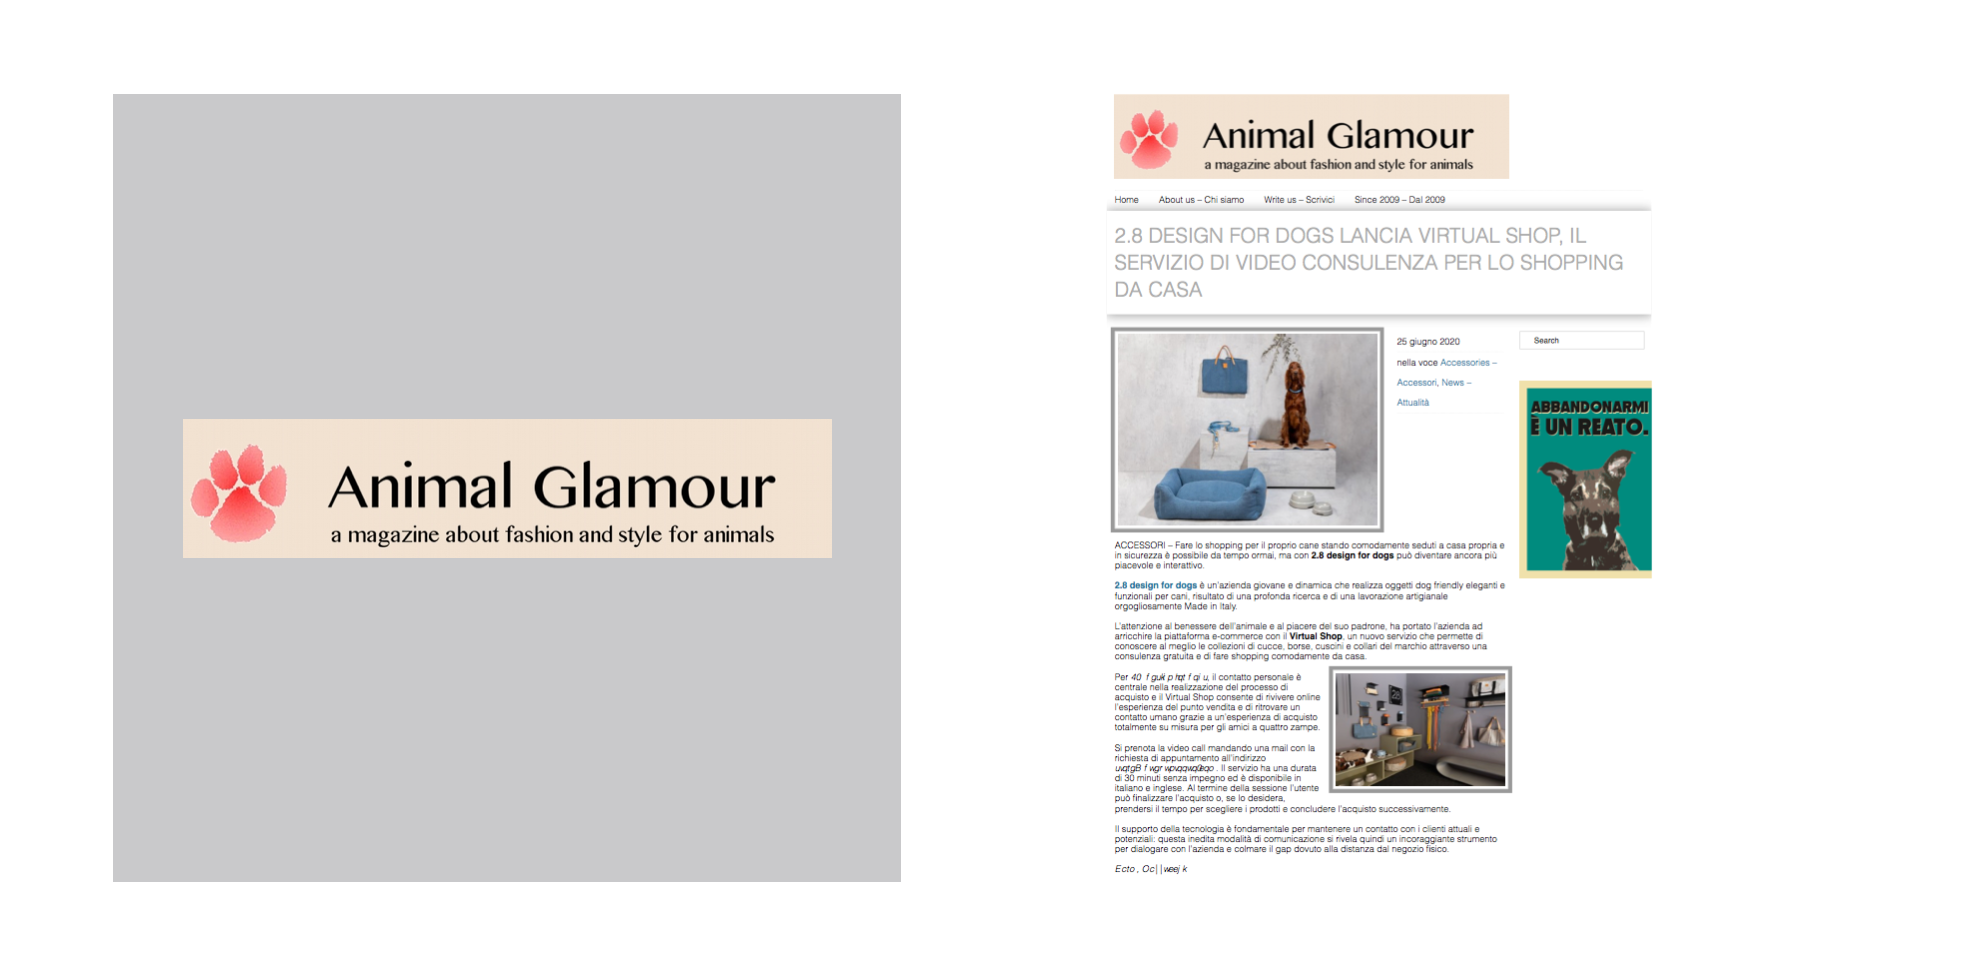 ANIMAL GLAMOUR 2.8 ARTICLE